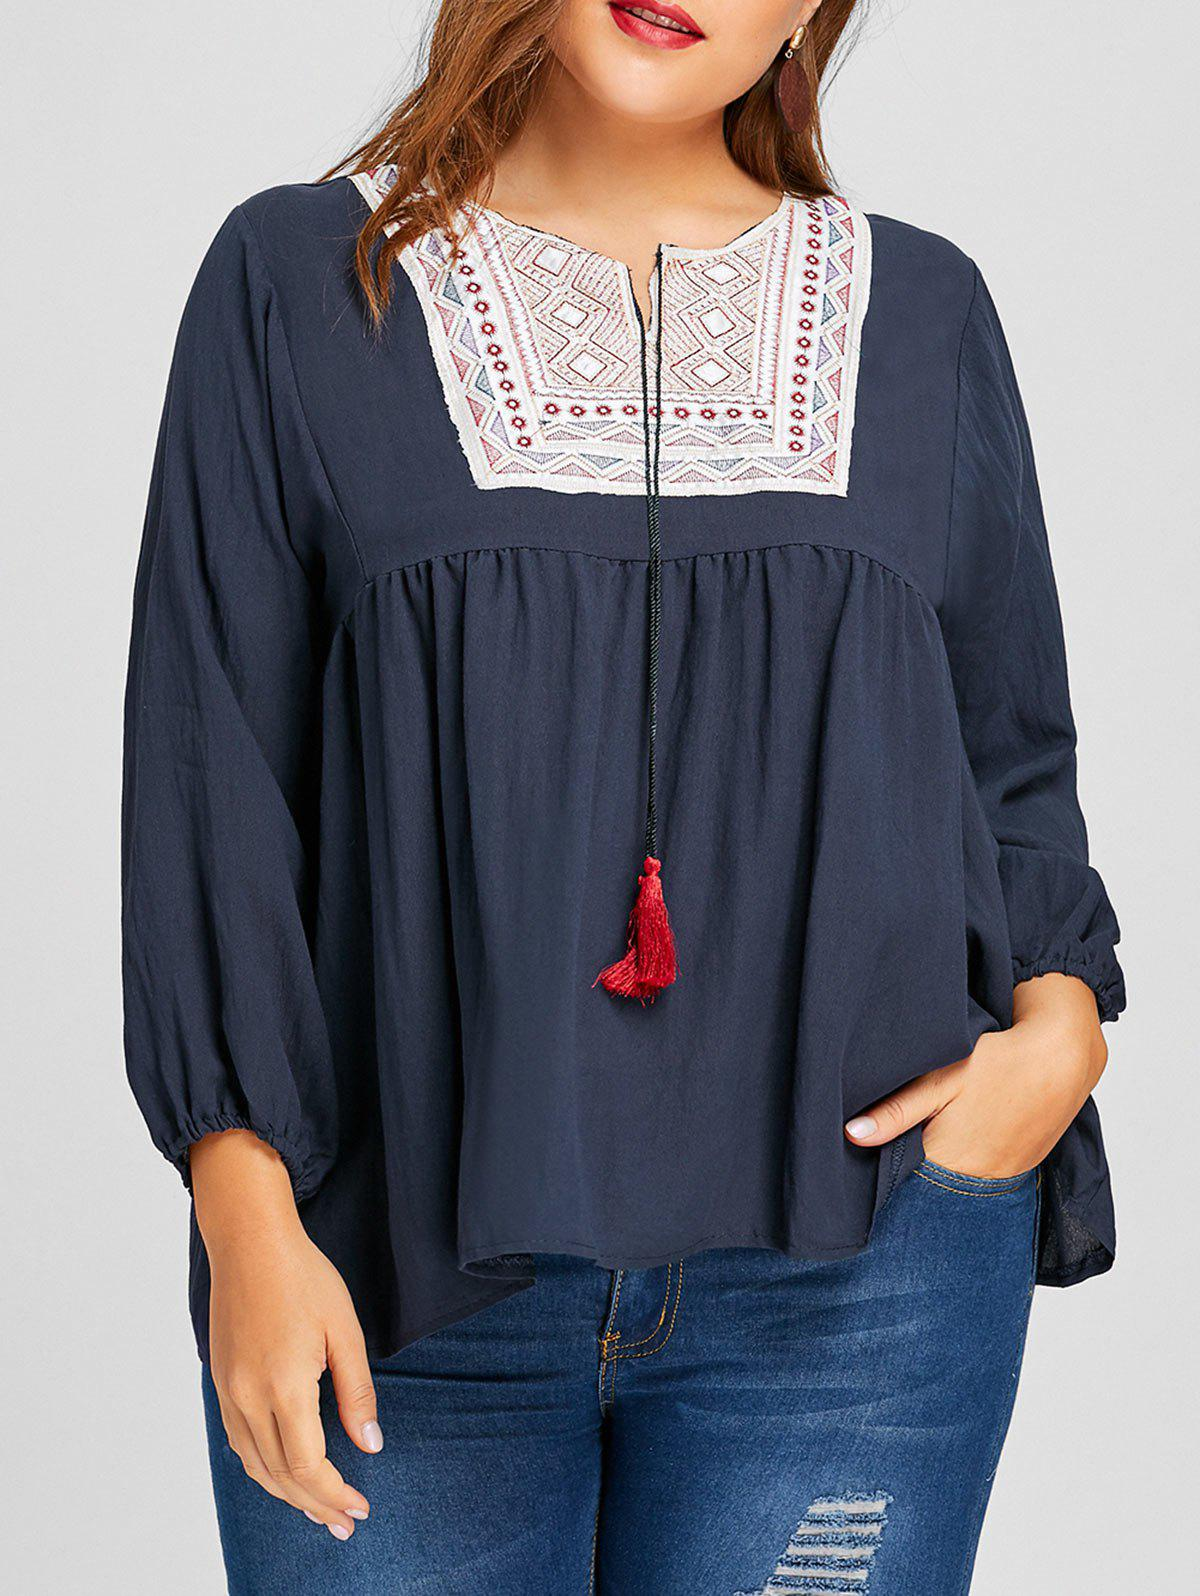 Plus Size Tassel Ethnic Embroidered BlouseWOMEN<br><br>Size: 3XL; Color: PURPLISH BLUE; Material: Polyester; Shirt Length: Long; Sleeve Length: Full; Collar: Keyhole Neck; Style: Casual; Season: Fall,Spring; Embellishment: Embroidery,Tassel; Pattern Type: Geometric; Weight: 0.3100kg; Package Contents: 1 x Blouse;